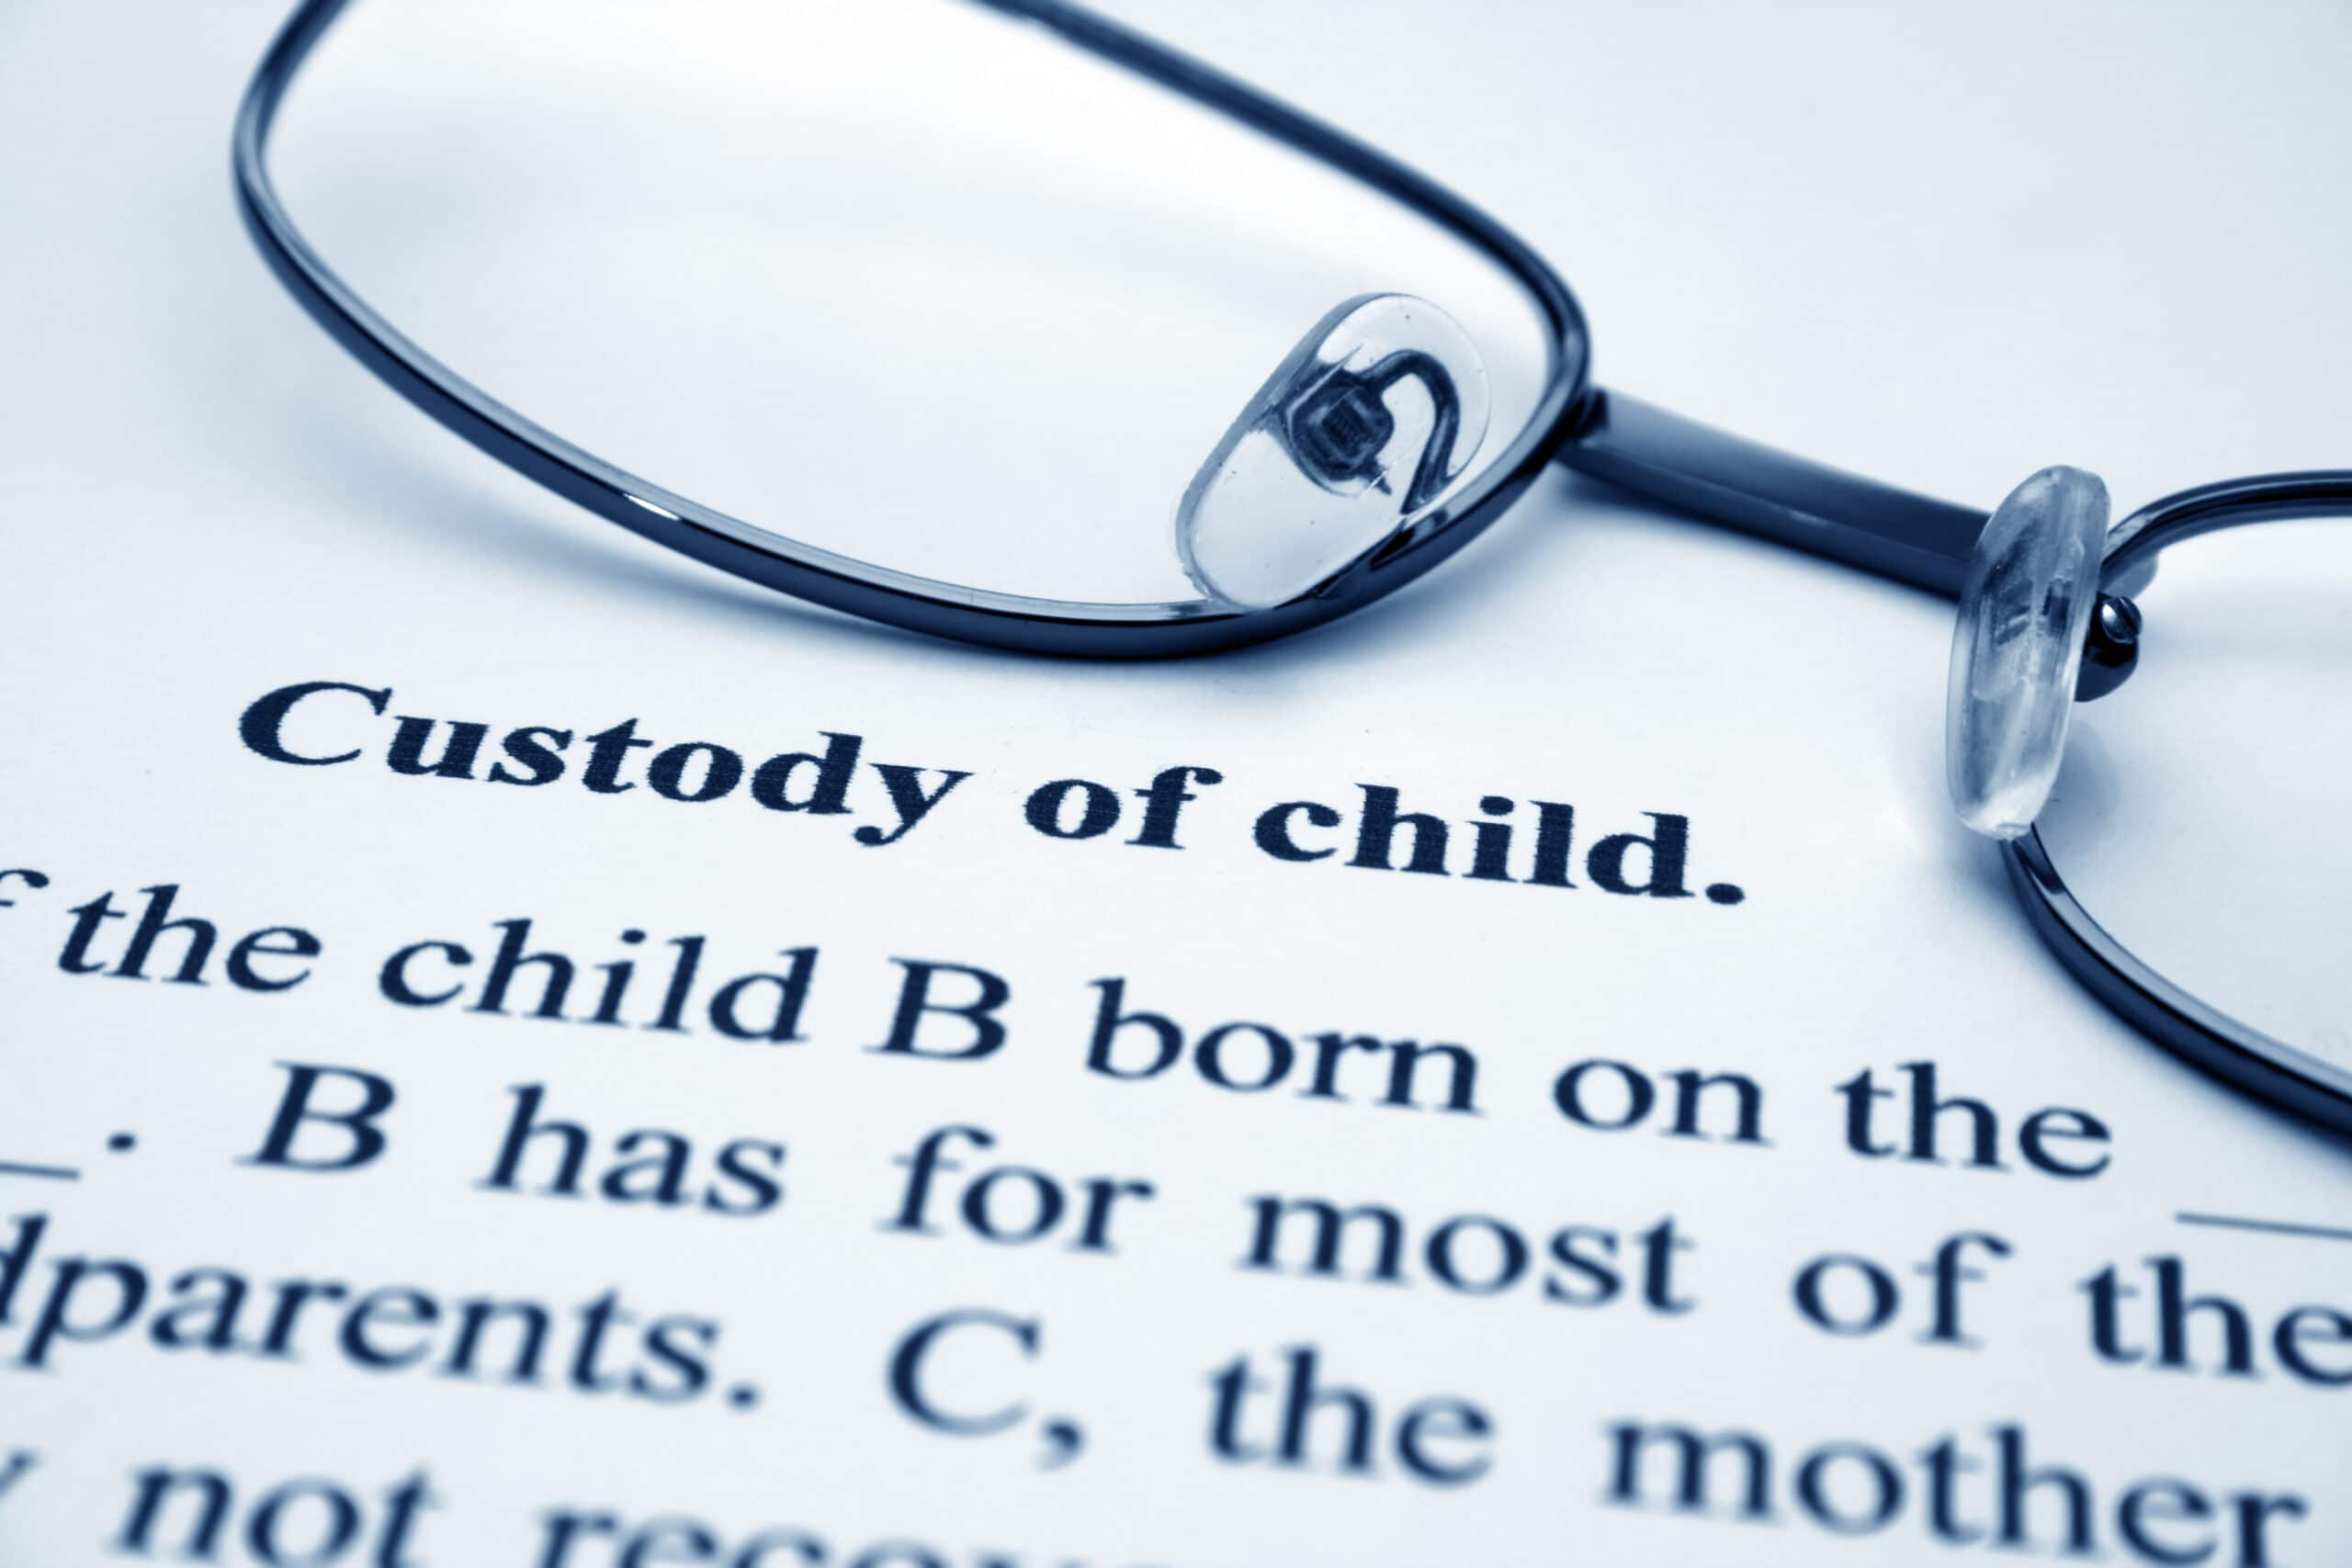 5 Tips for Creating Successful Custody Schedules